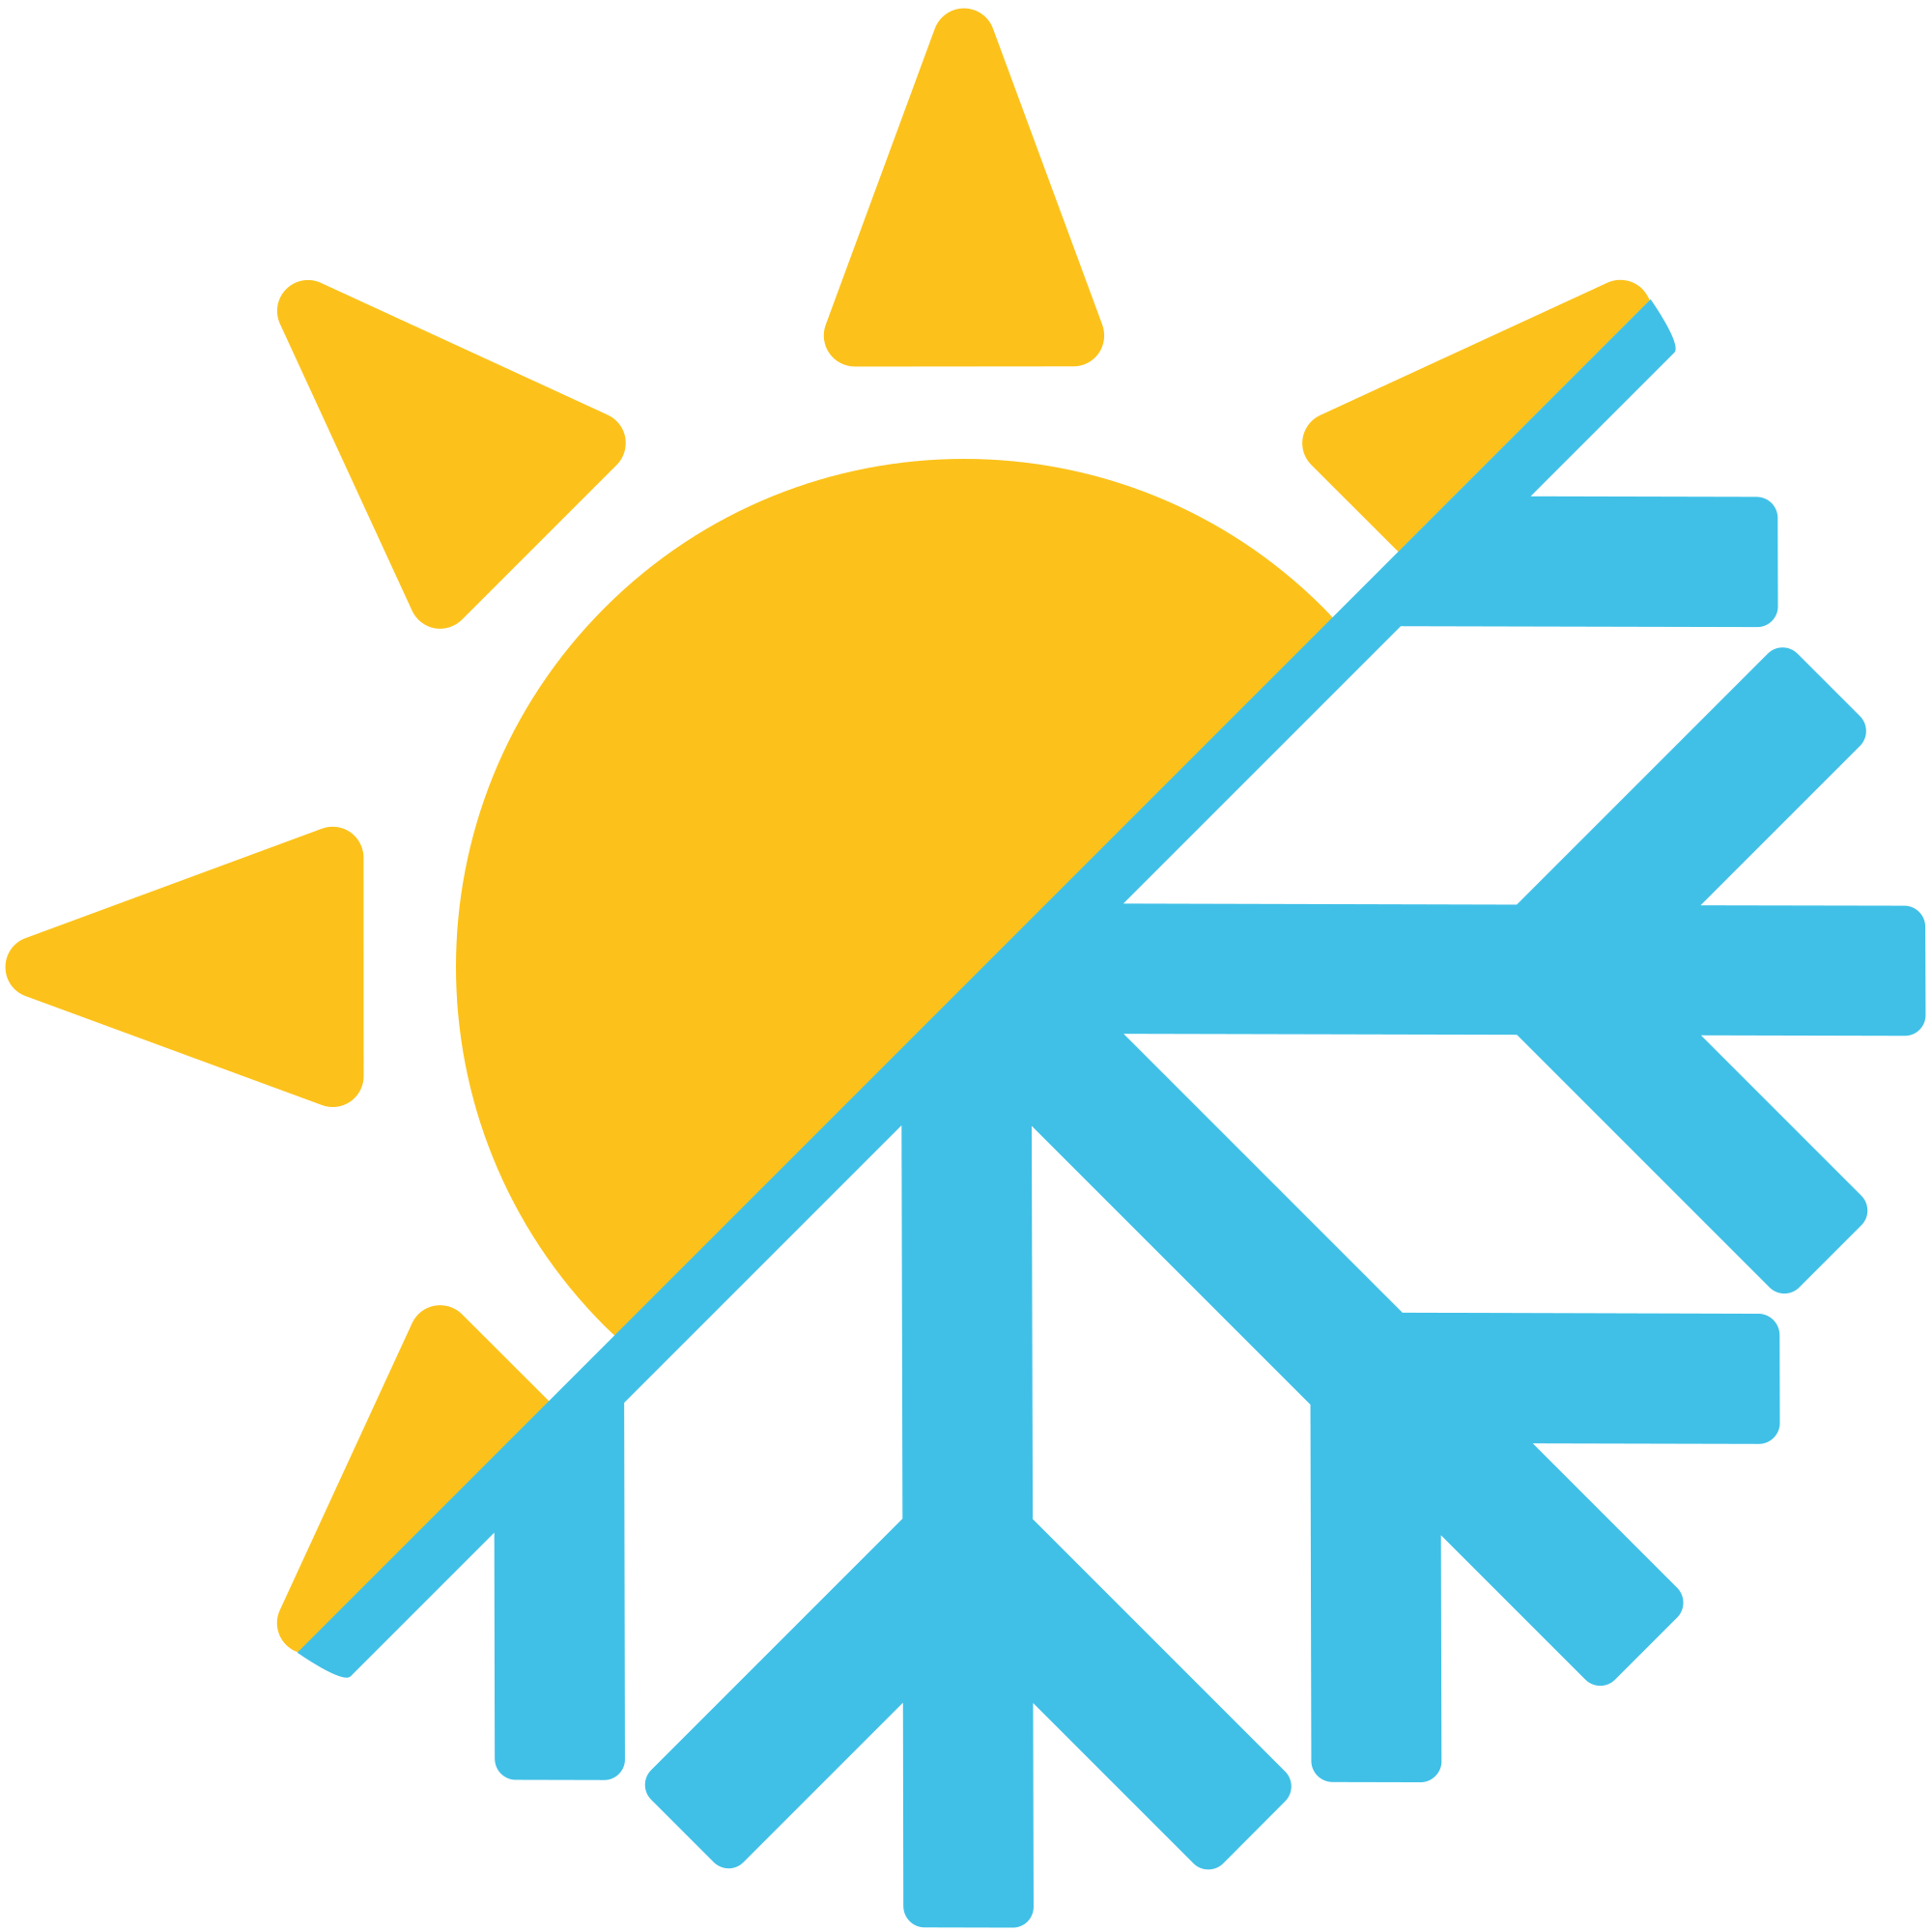 Cold svg #19, Download drawings